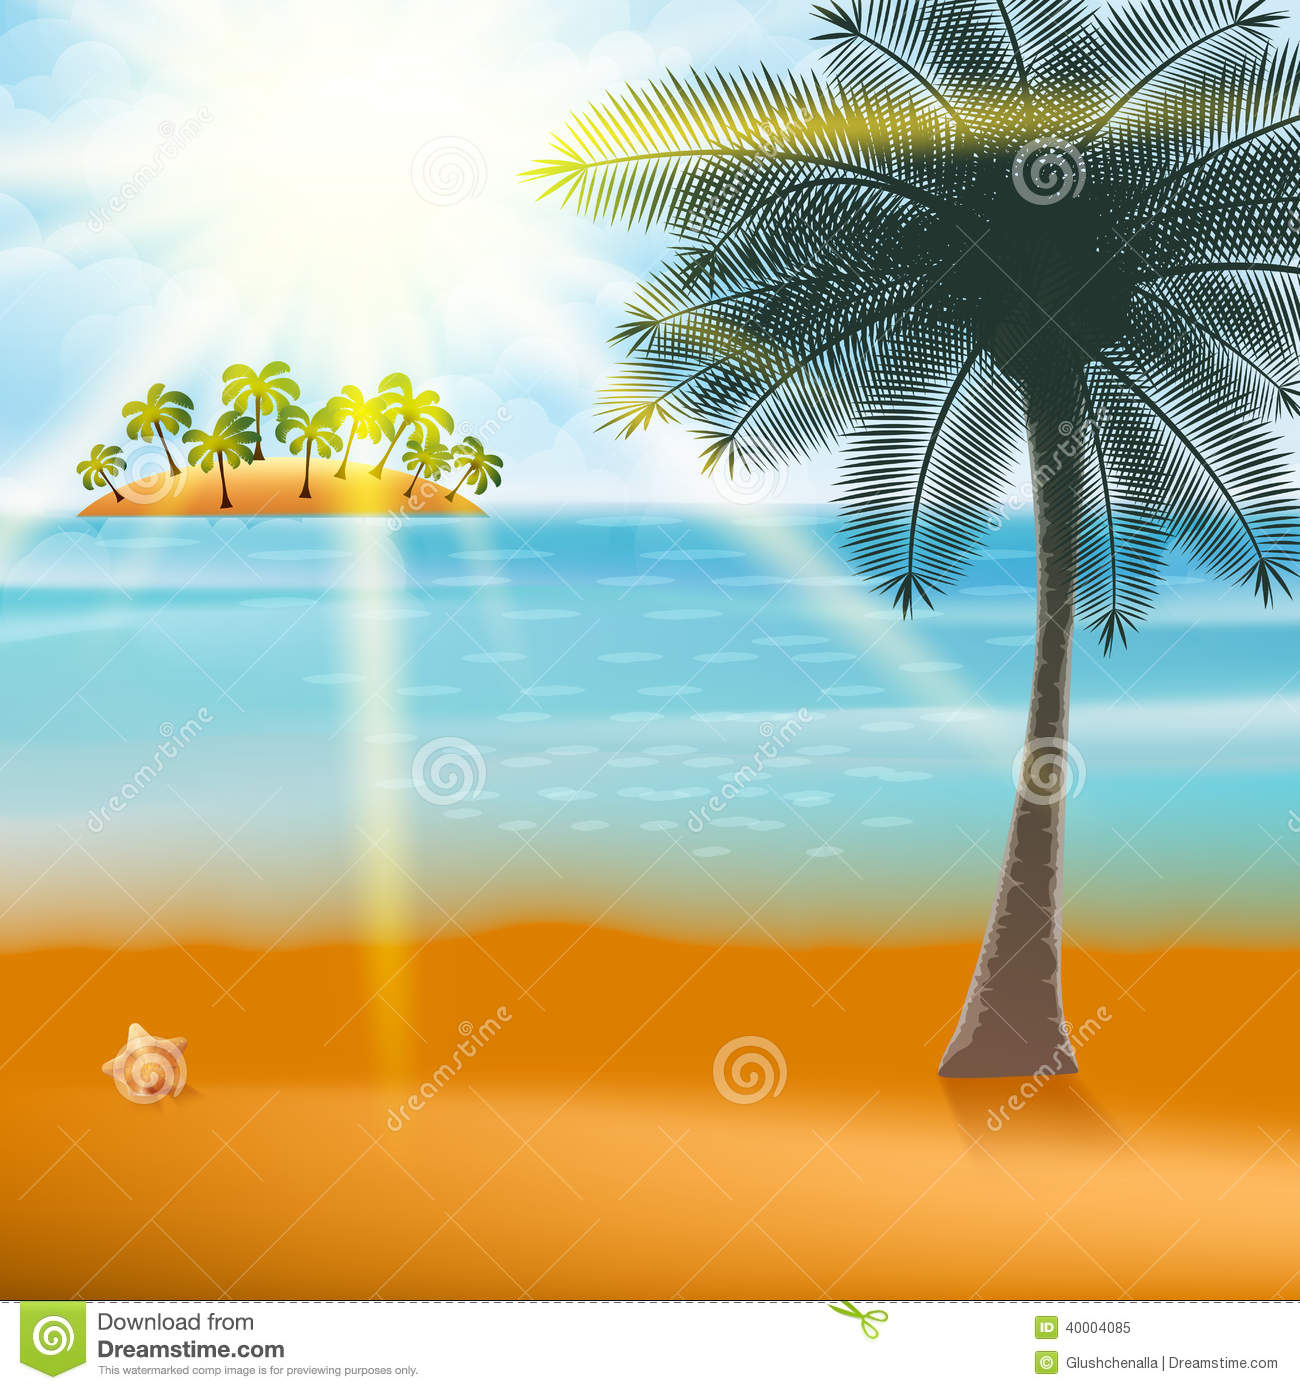 Summer Holiday Flyer Design With Palm Trees Stock Vector  Image 40004085